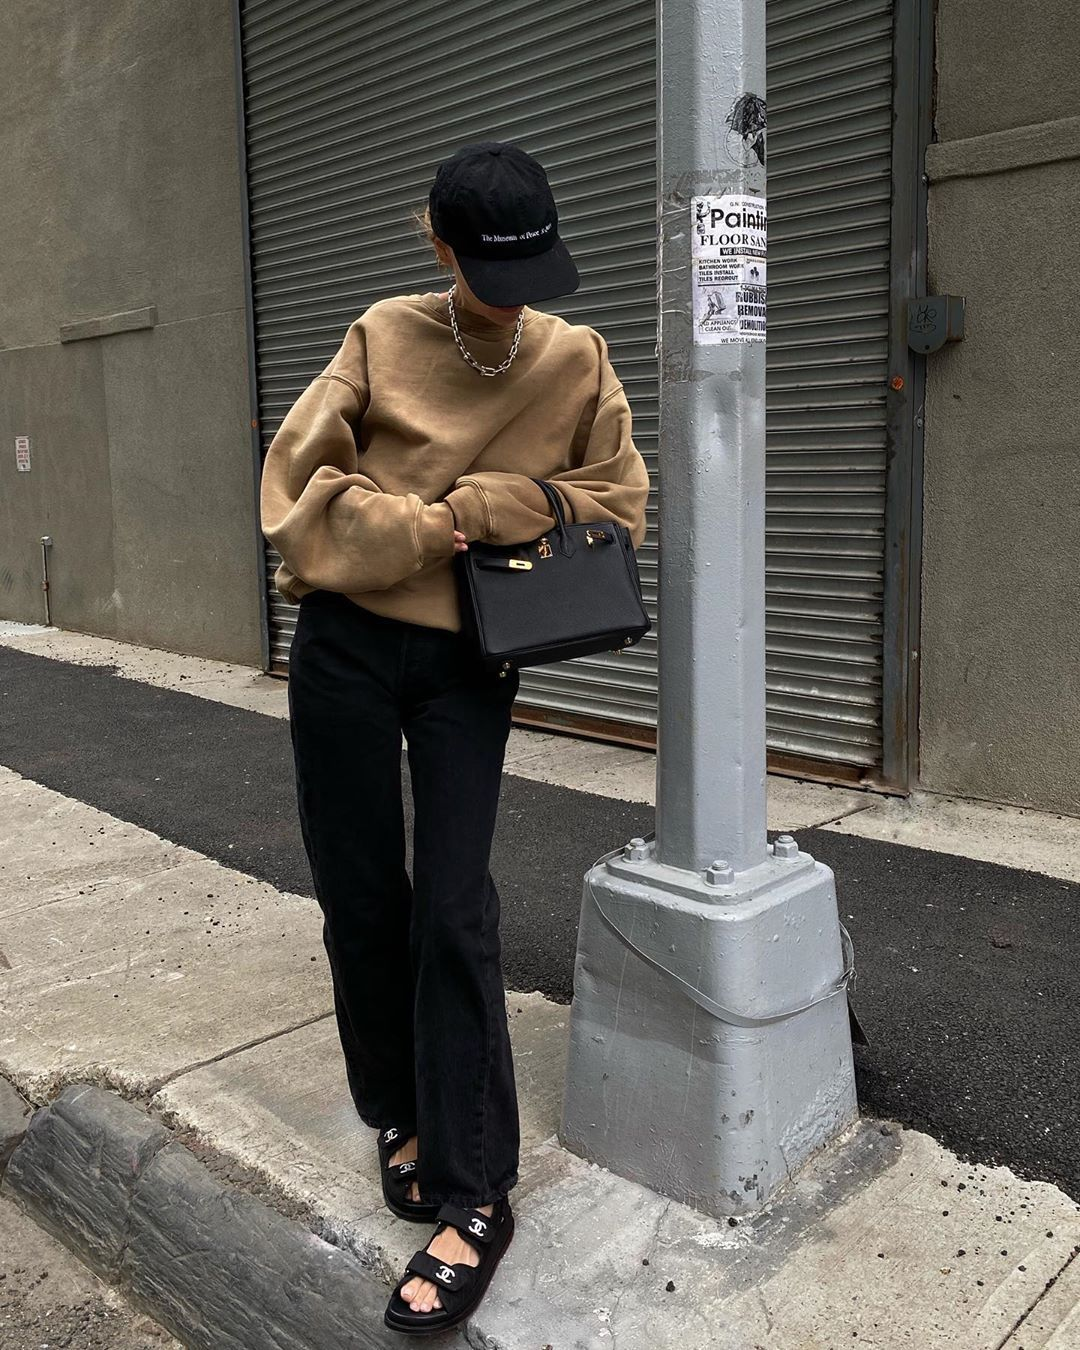 Marie Von Behrens On Instagram Incognito In 2020 Classy Parisian Style Parisian Chic Style Fashion